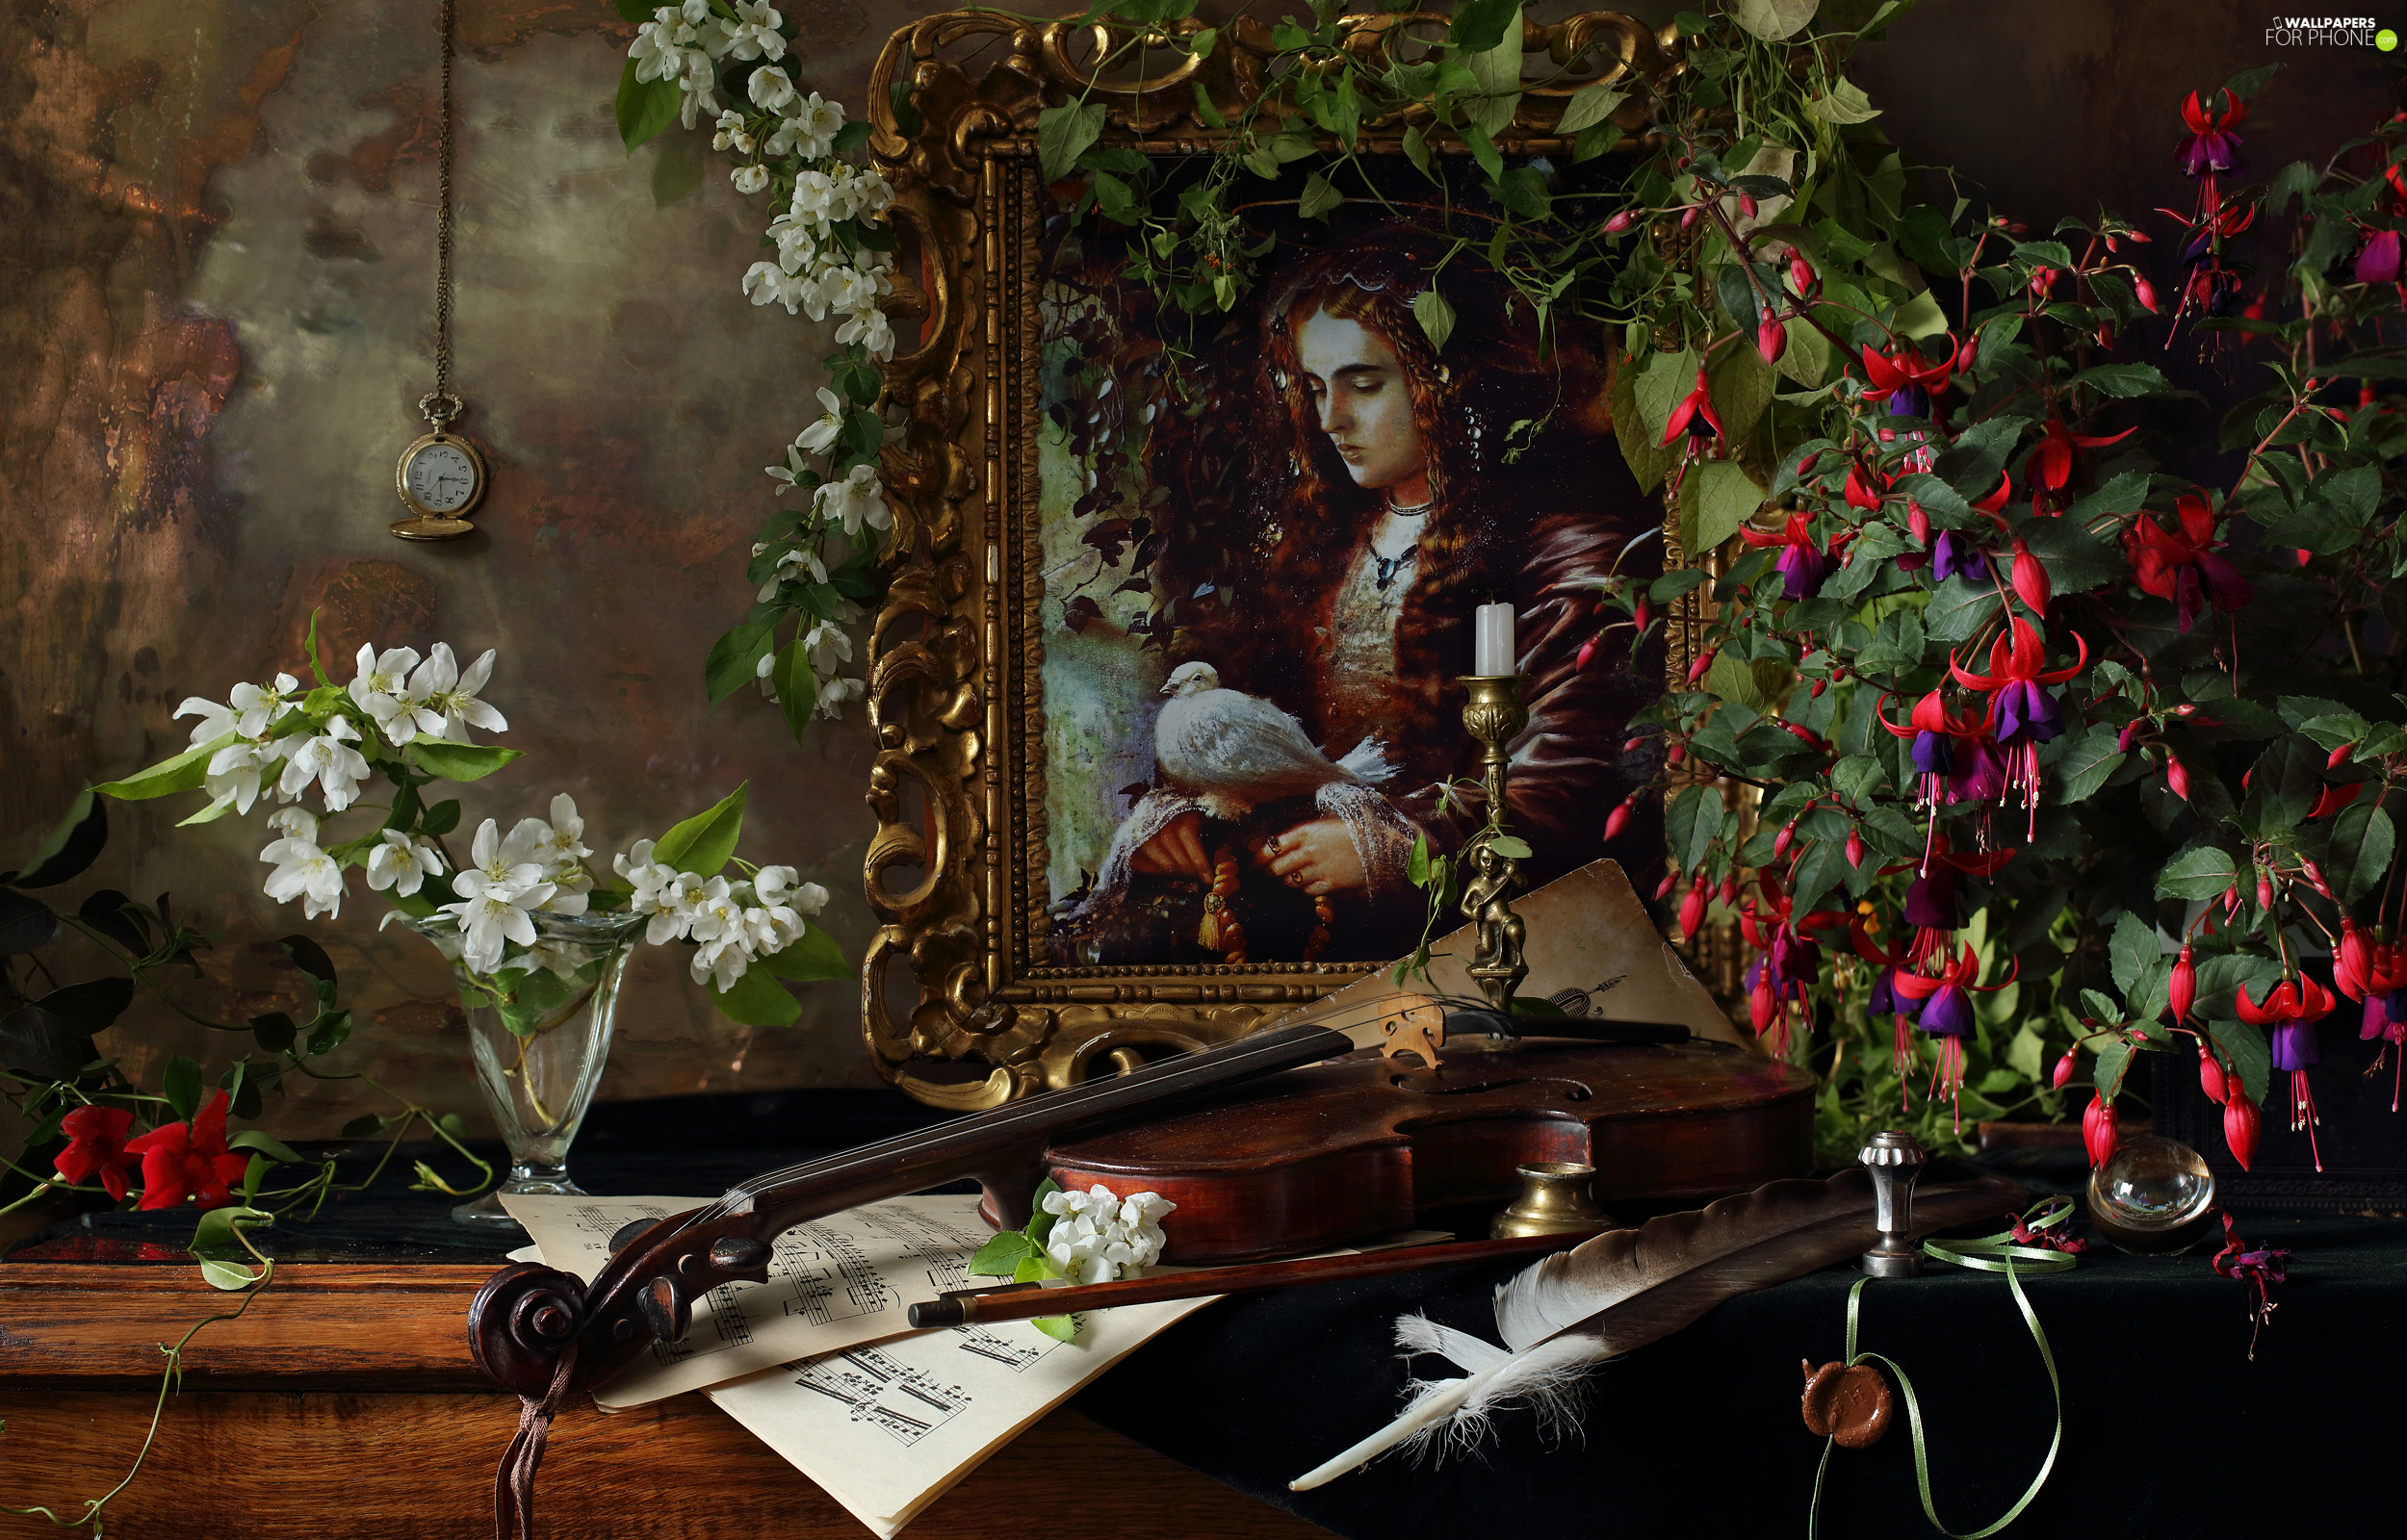 violin, fuchsia, Watch, picture, Flowers, pen, composition